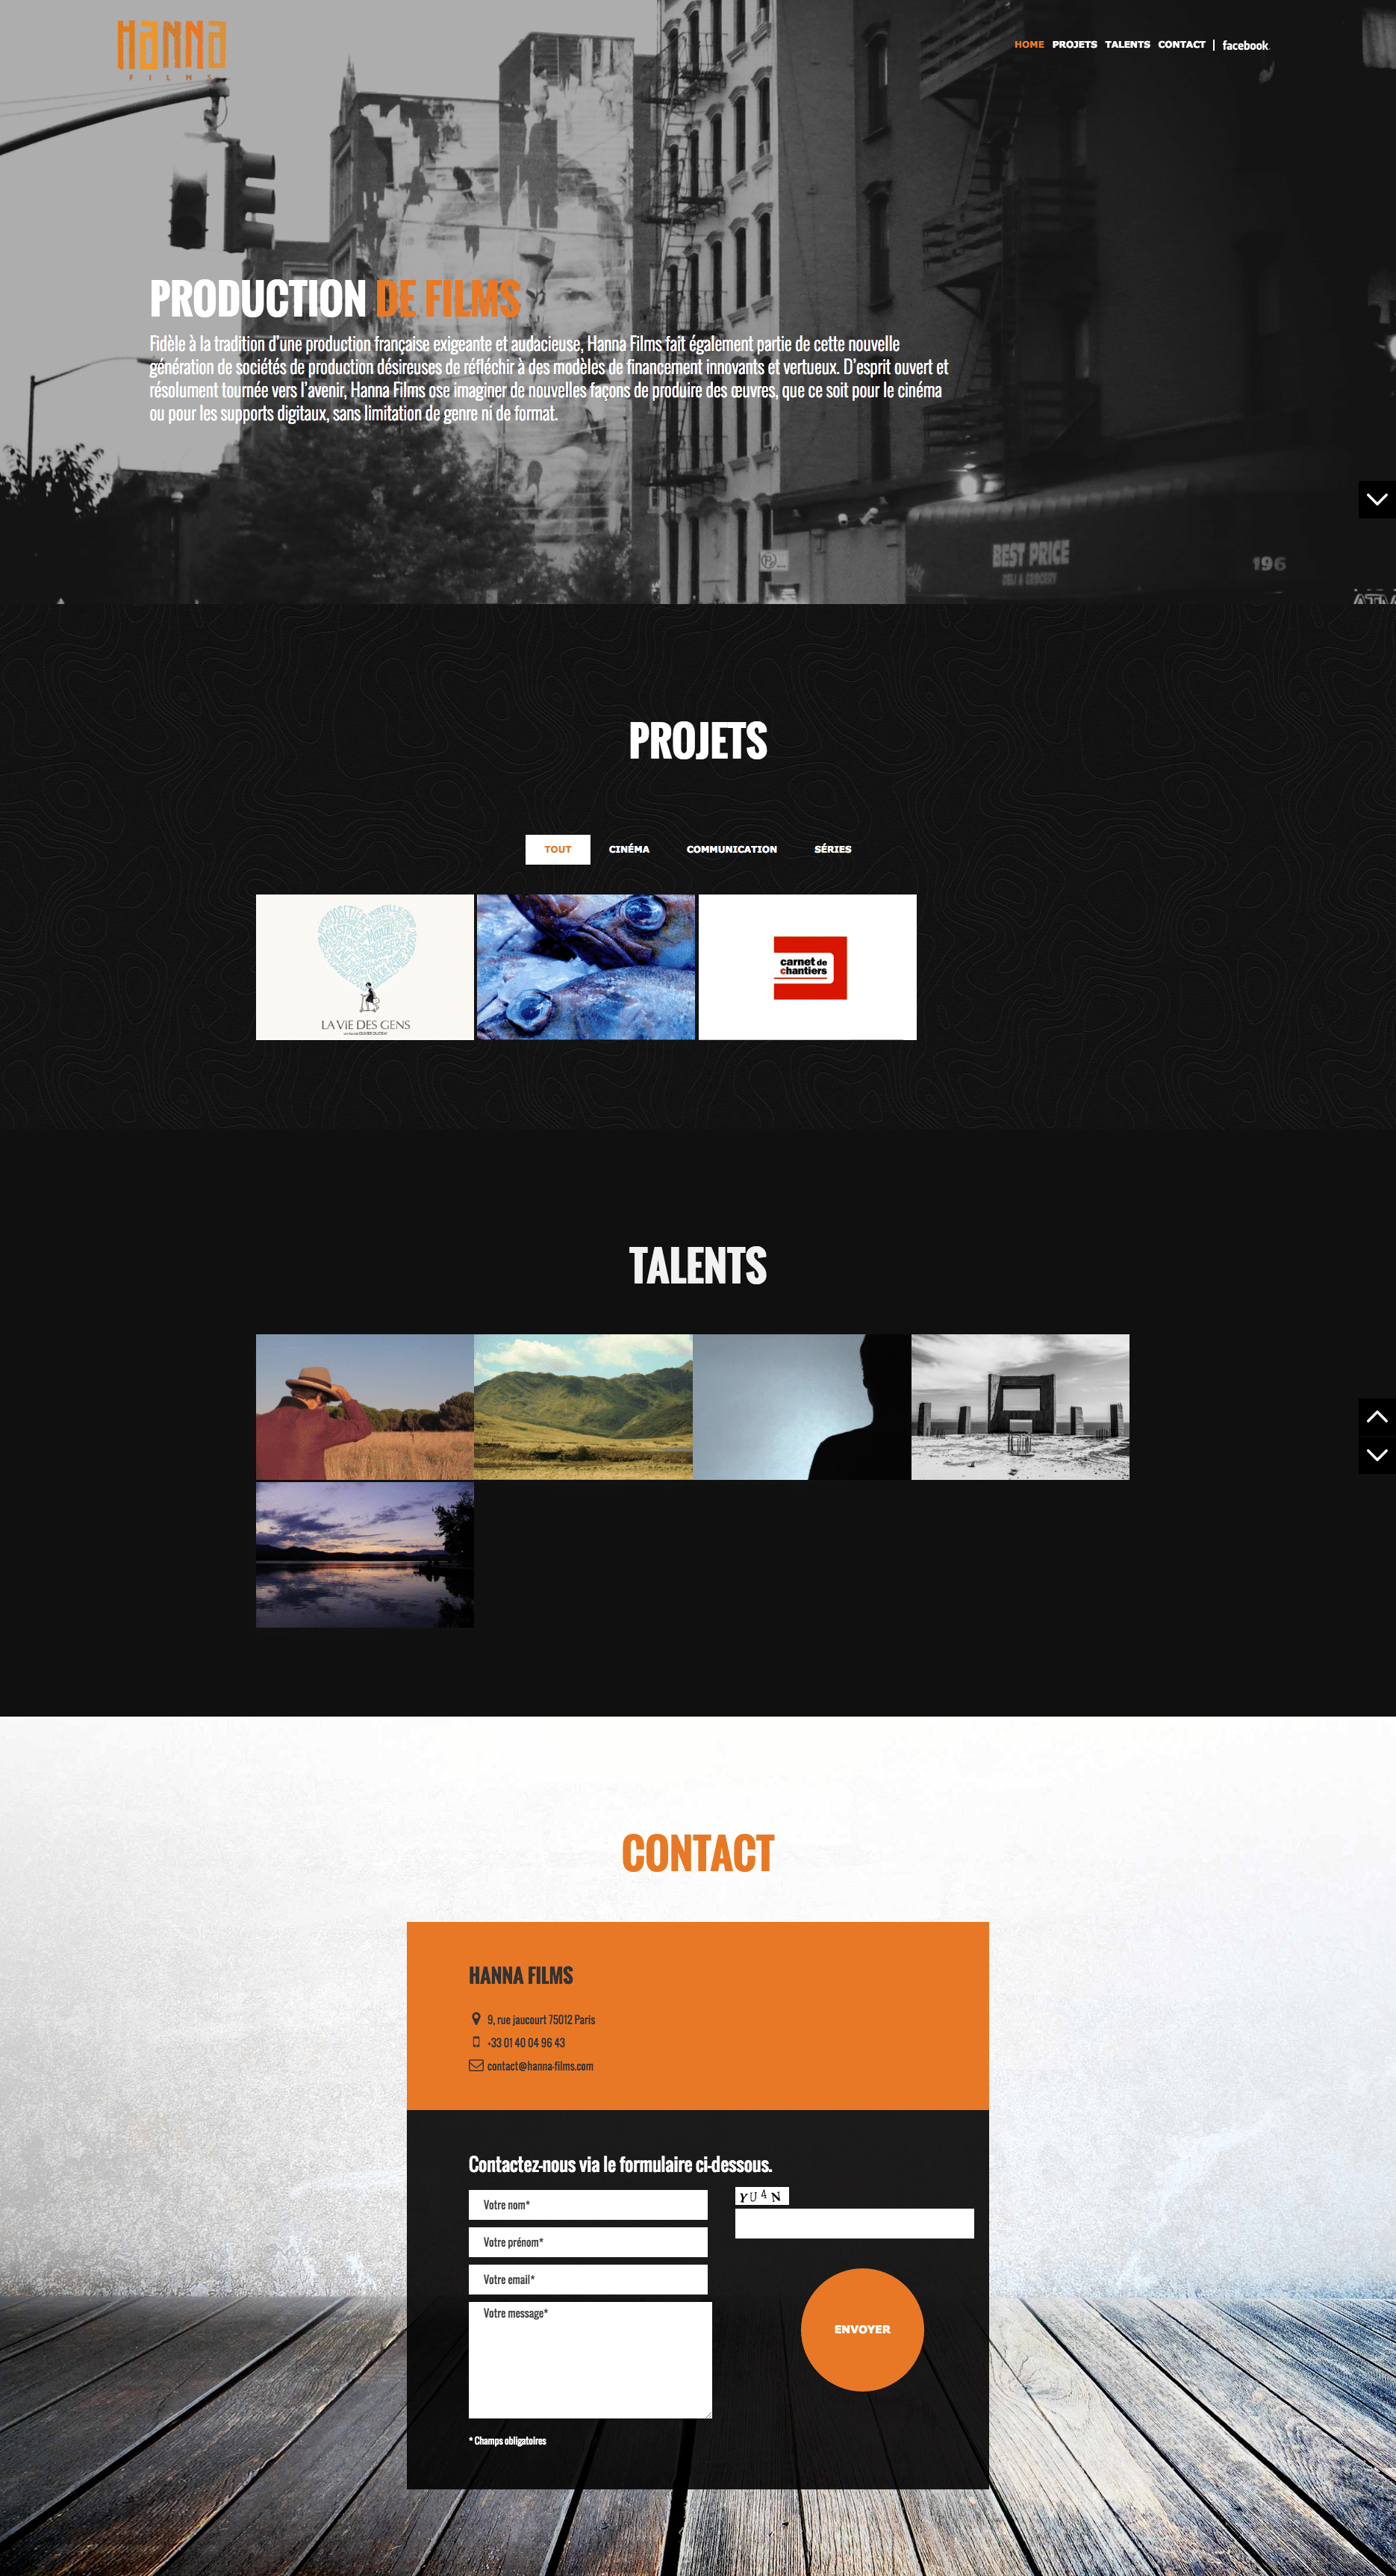 Site WordPress - Freelance Freelance - Hanna films